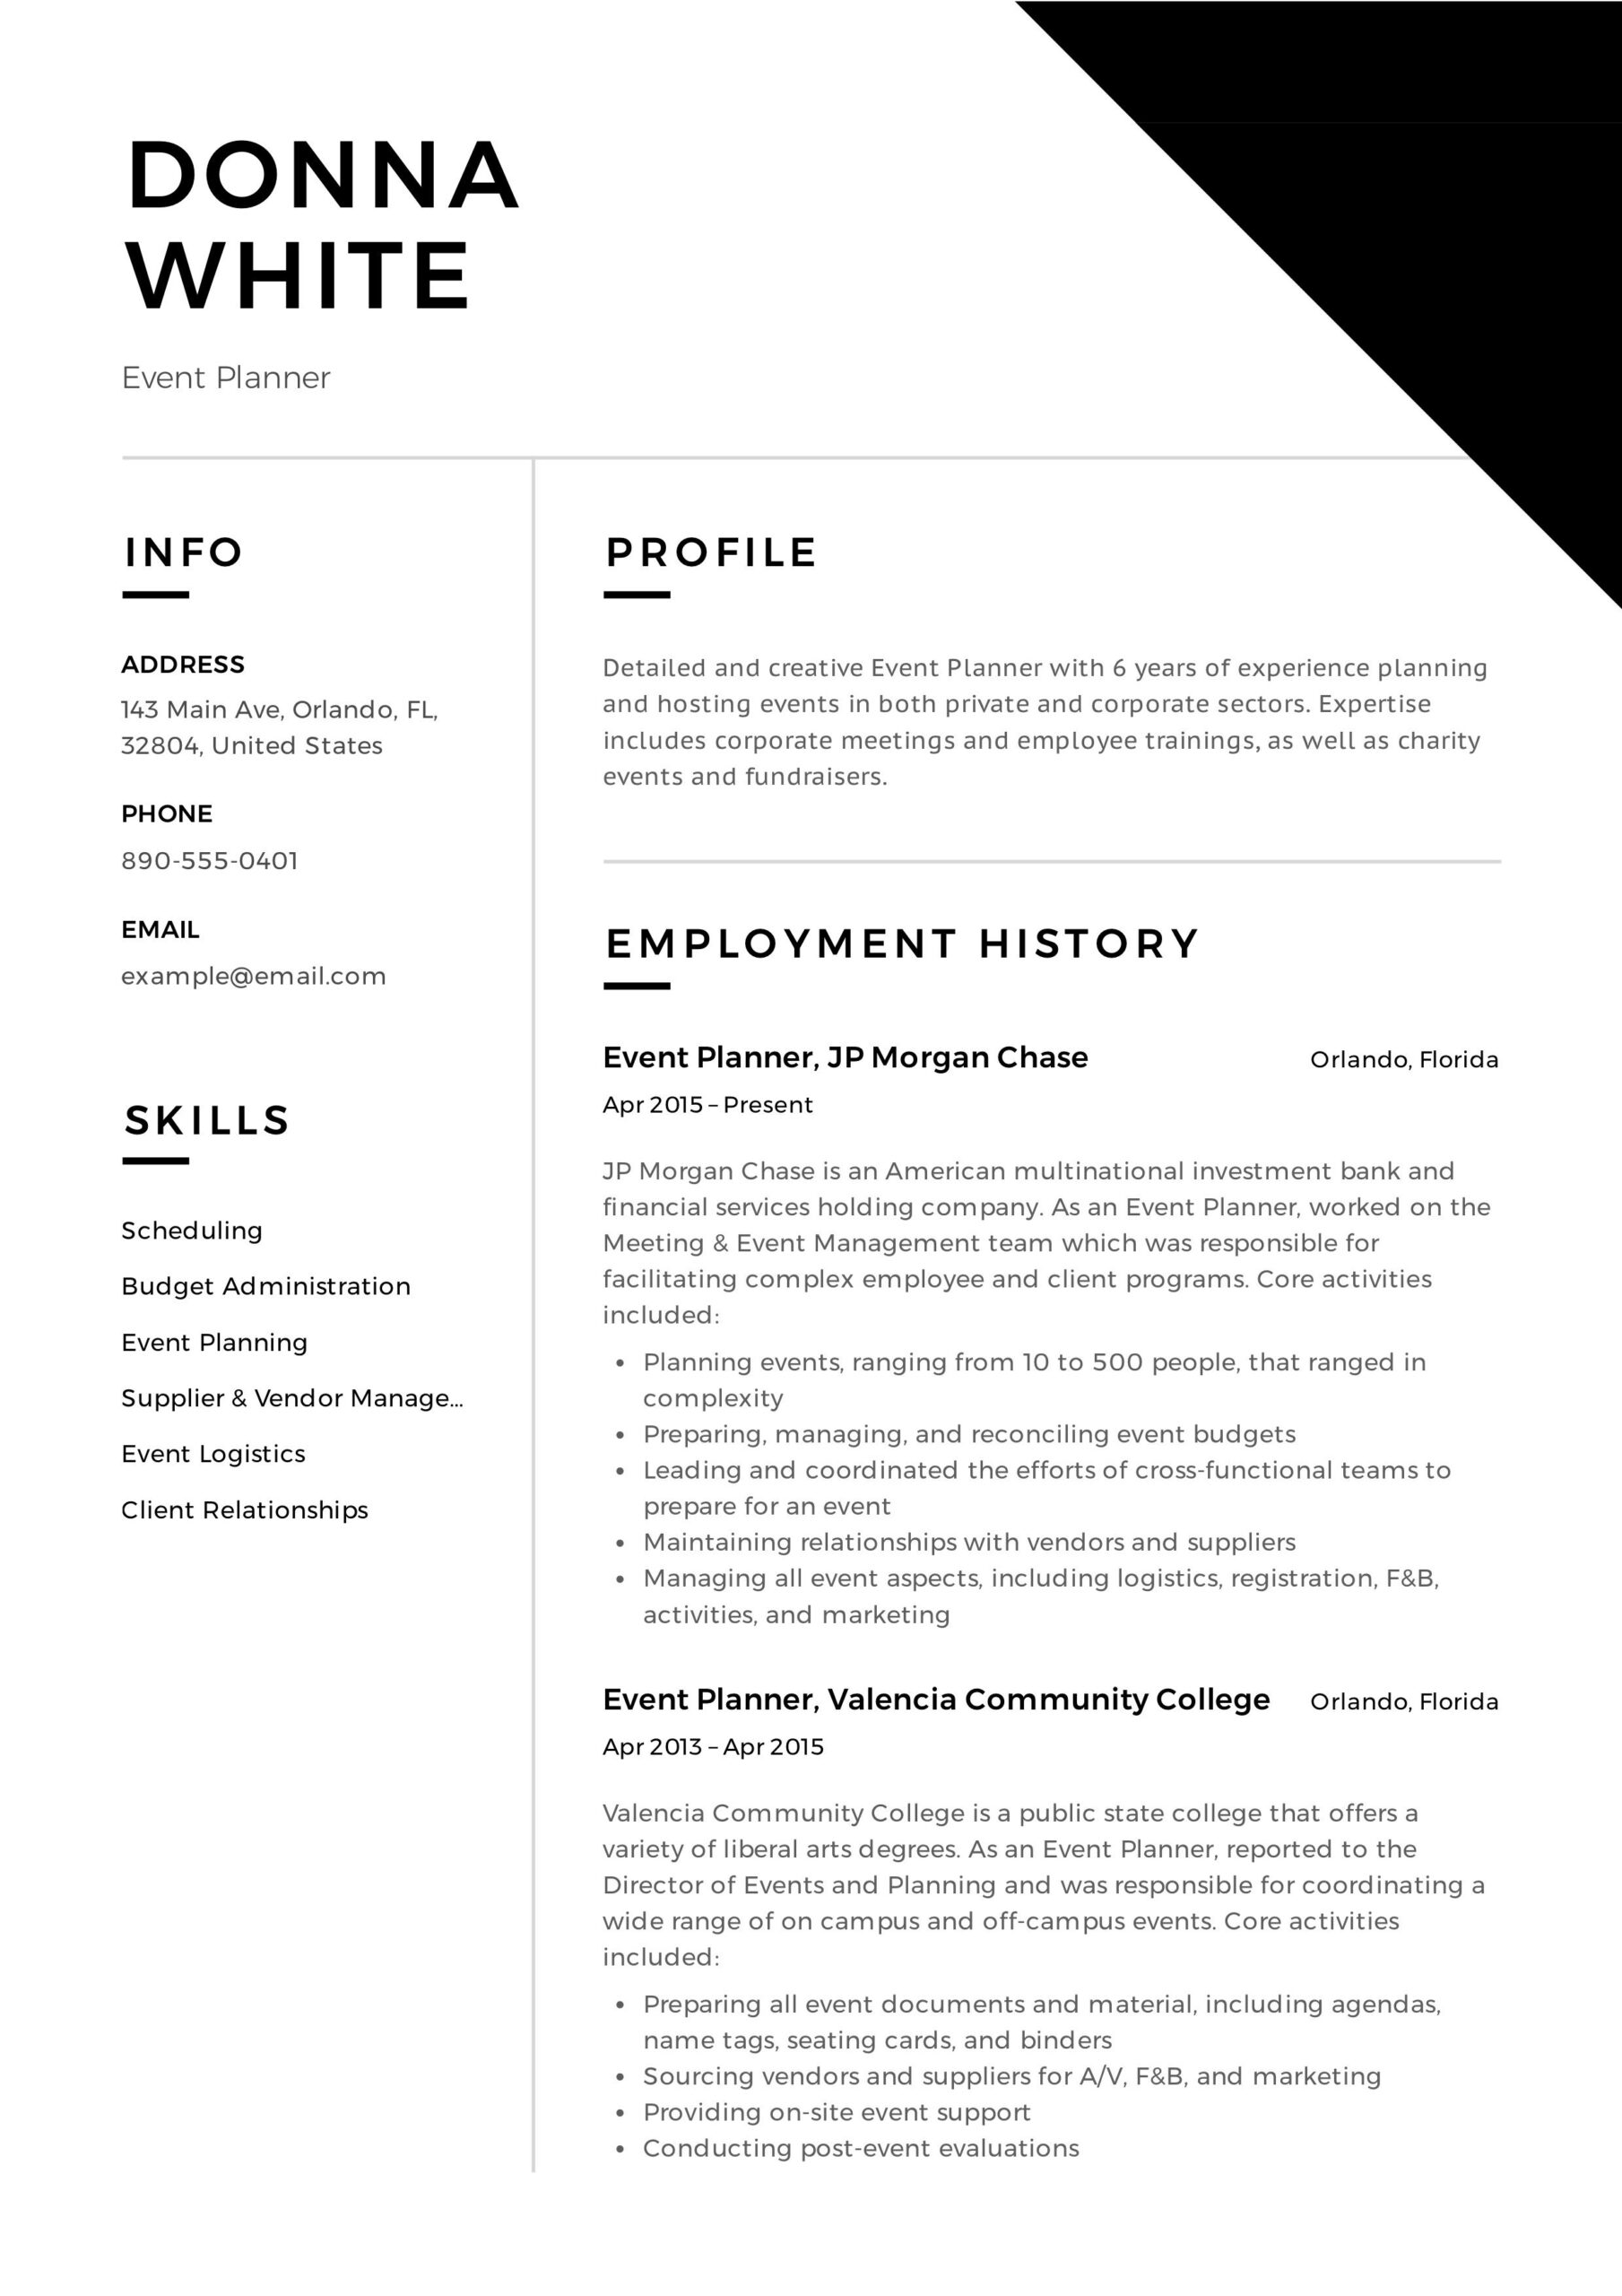 event planner resume professional examples reply email for sending entry level bartender Resume Event Planner Resume Examples